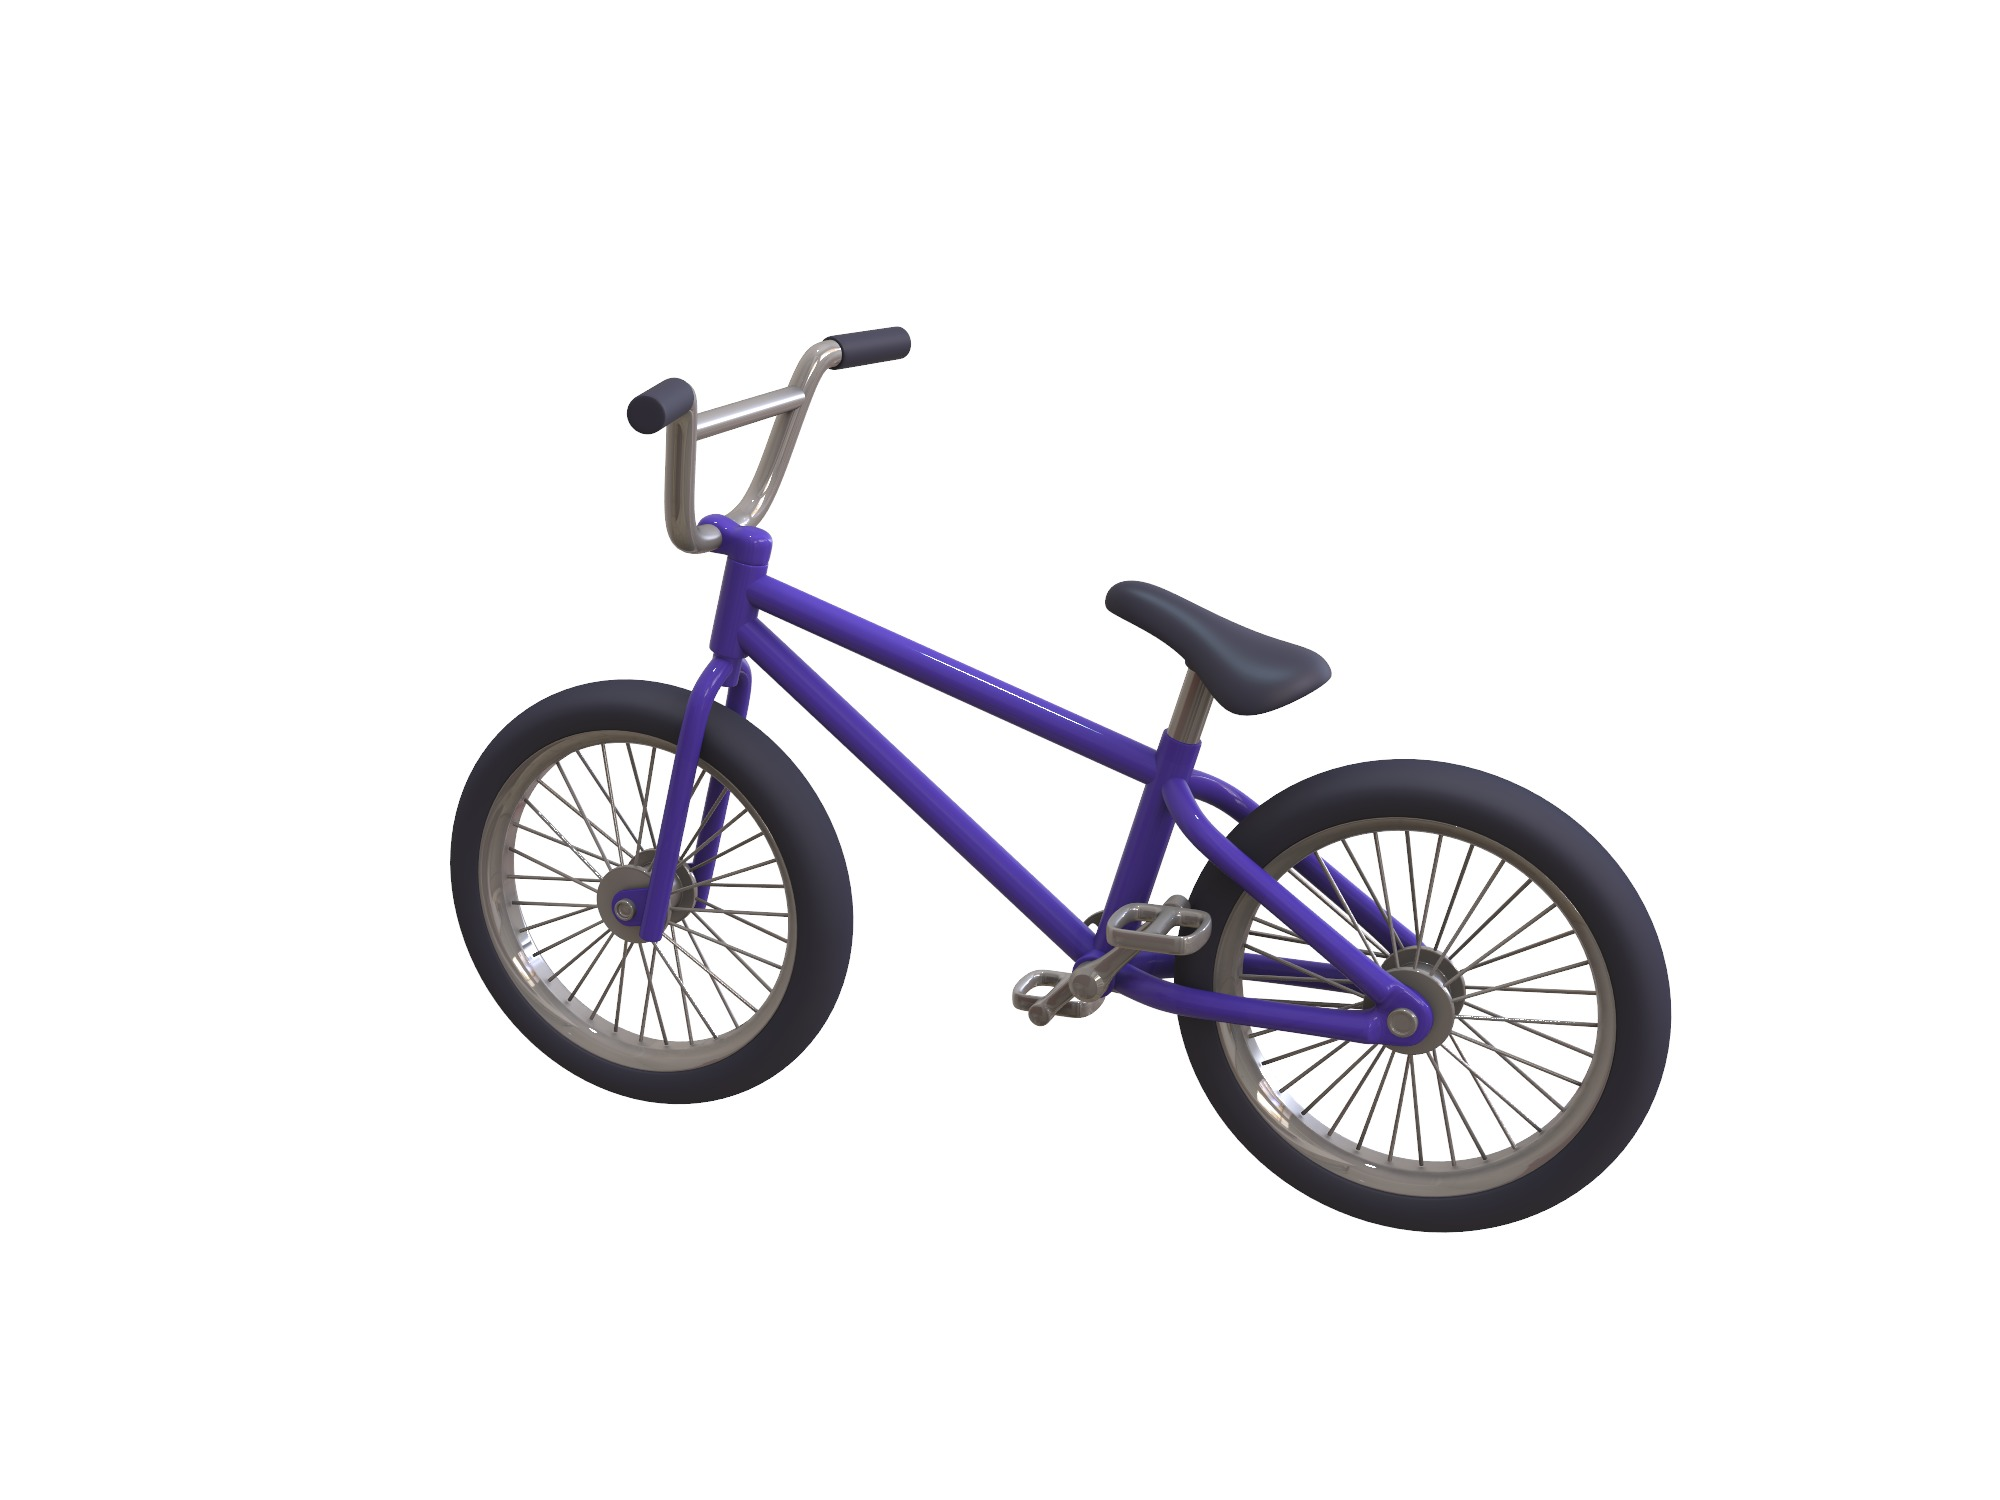 Freestyle Bike - 3D design by Vectary assets Jun 4, 2018